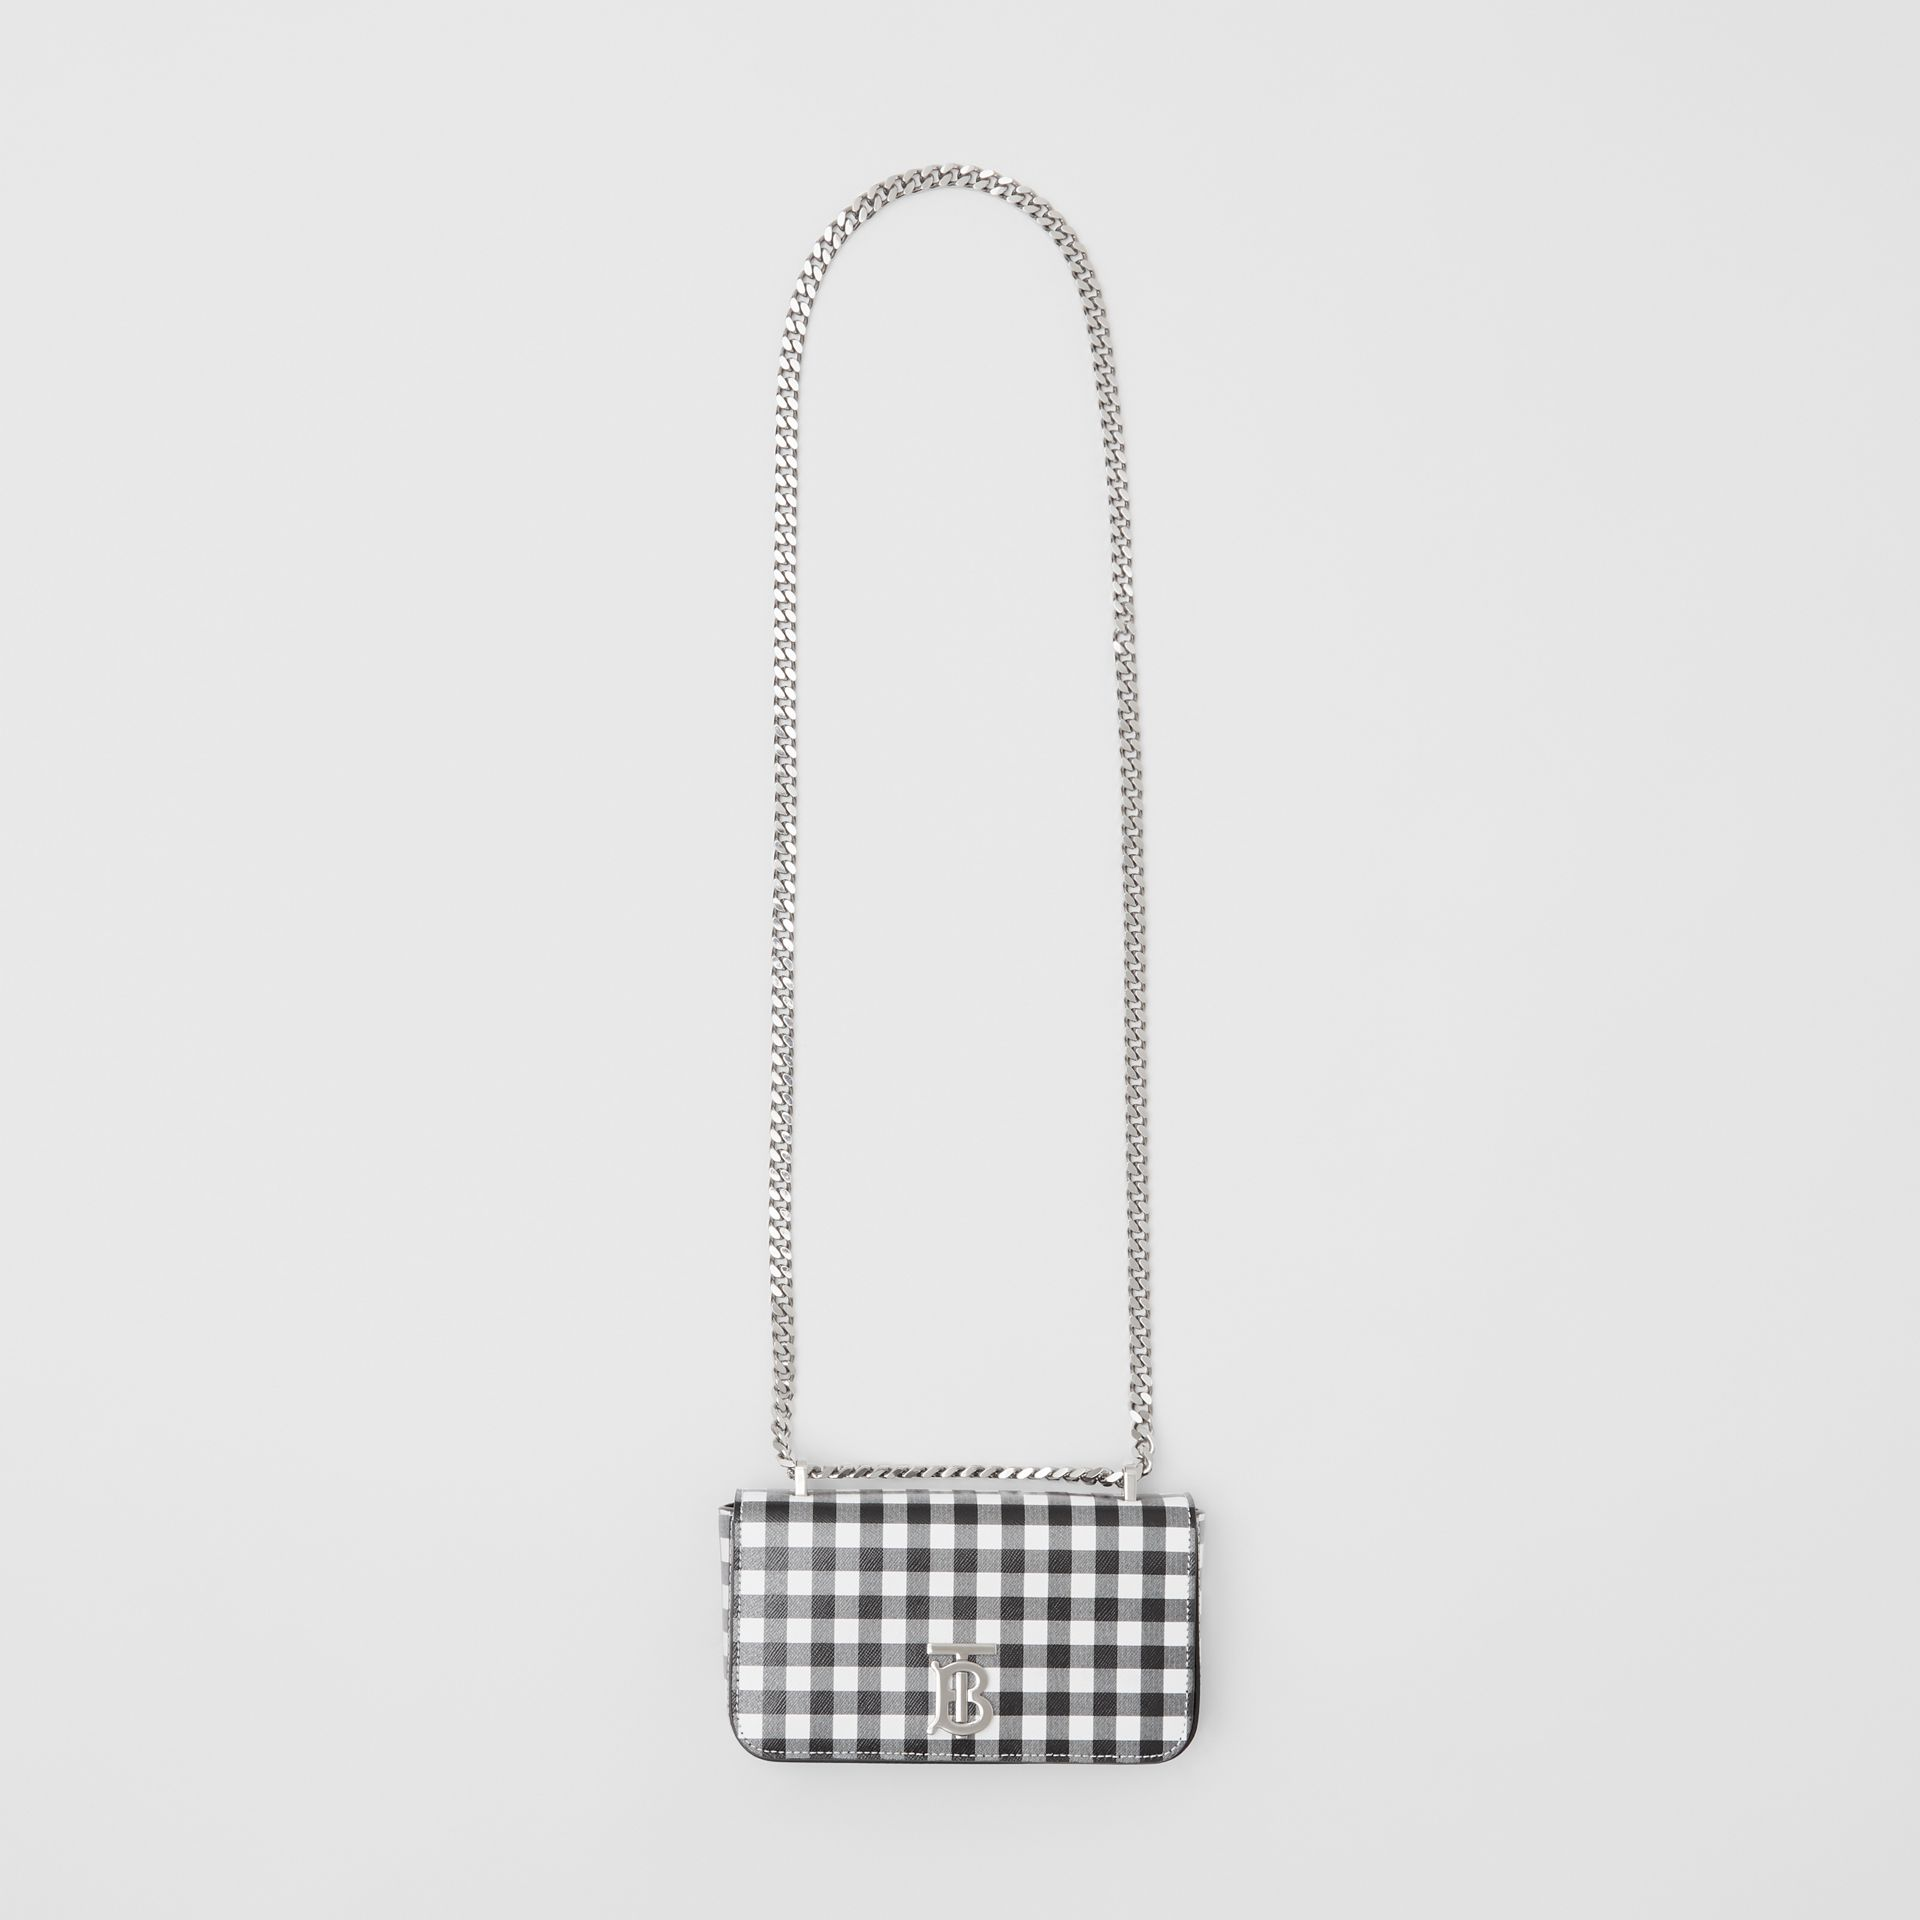 Mini Gingham Leather Lola Bag in Black/white - Women | Burberry - gallery image 3